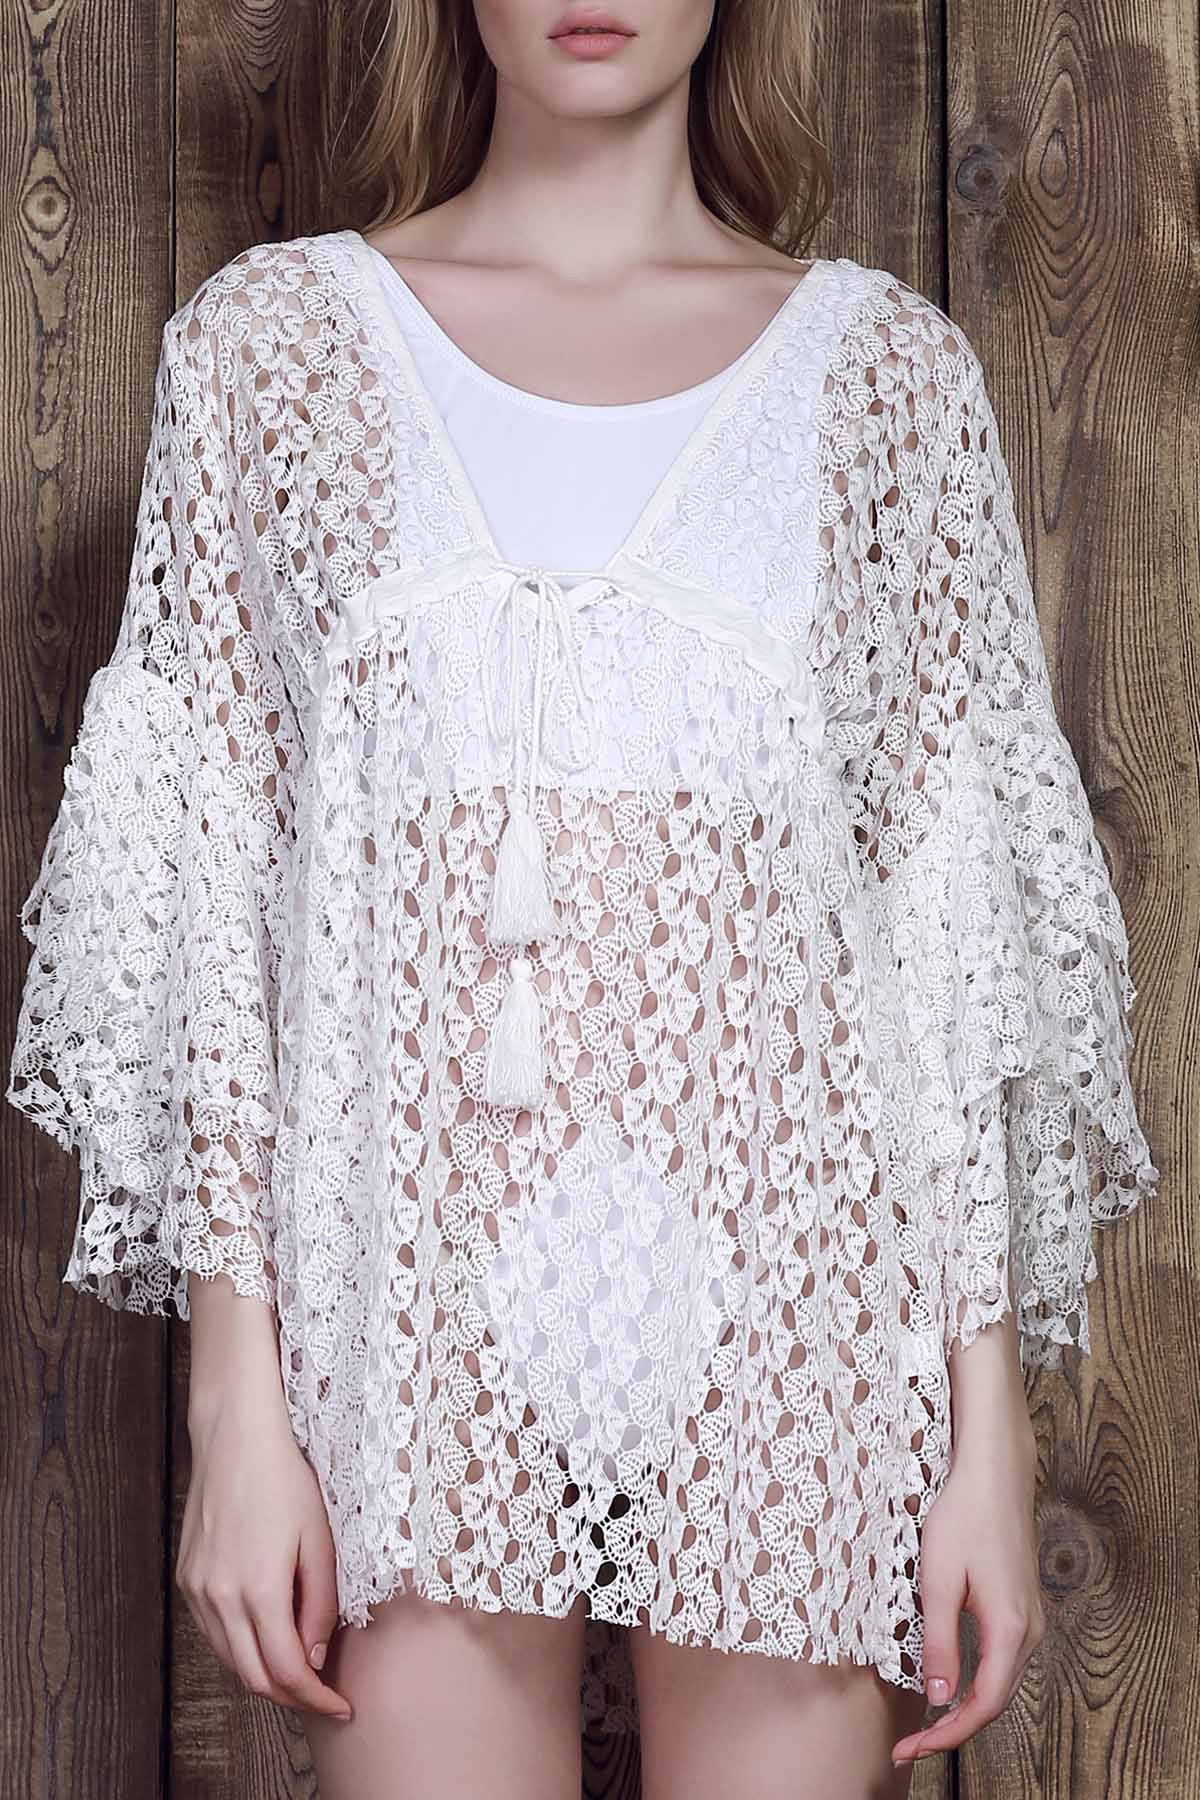 Plunging Neck 3/4 Sleeve White Lace Cover-Up